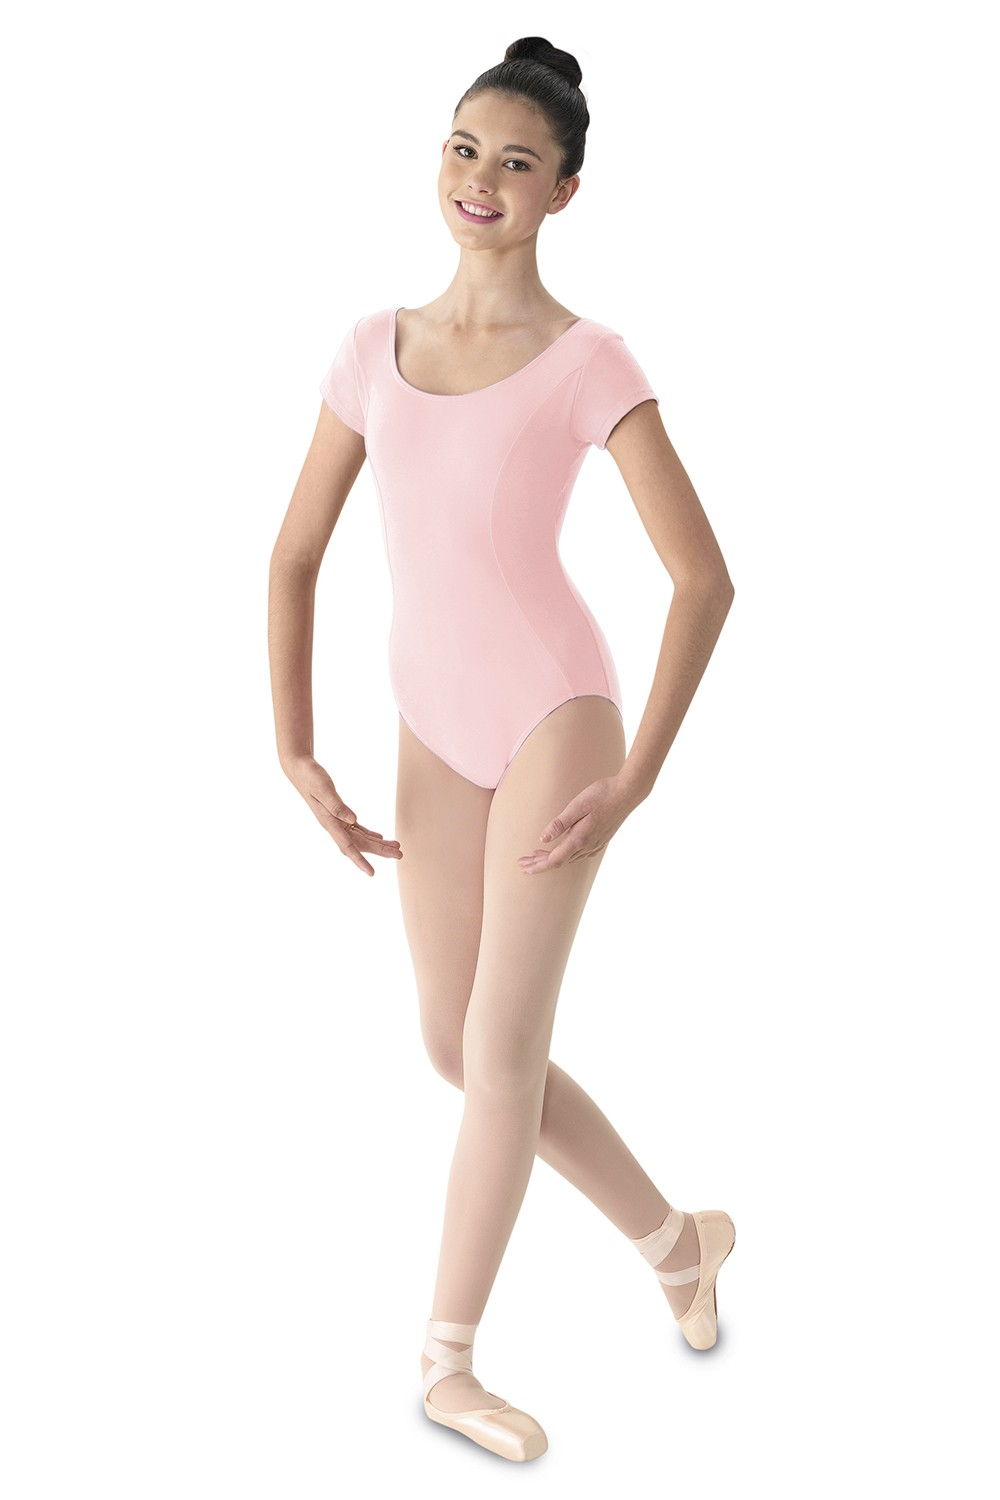 Cap Sleeve Leotard Women's Dance Leotards